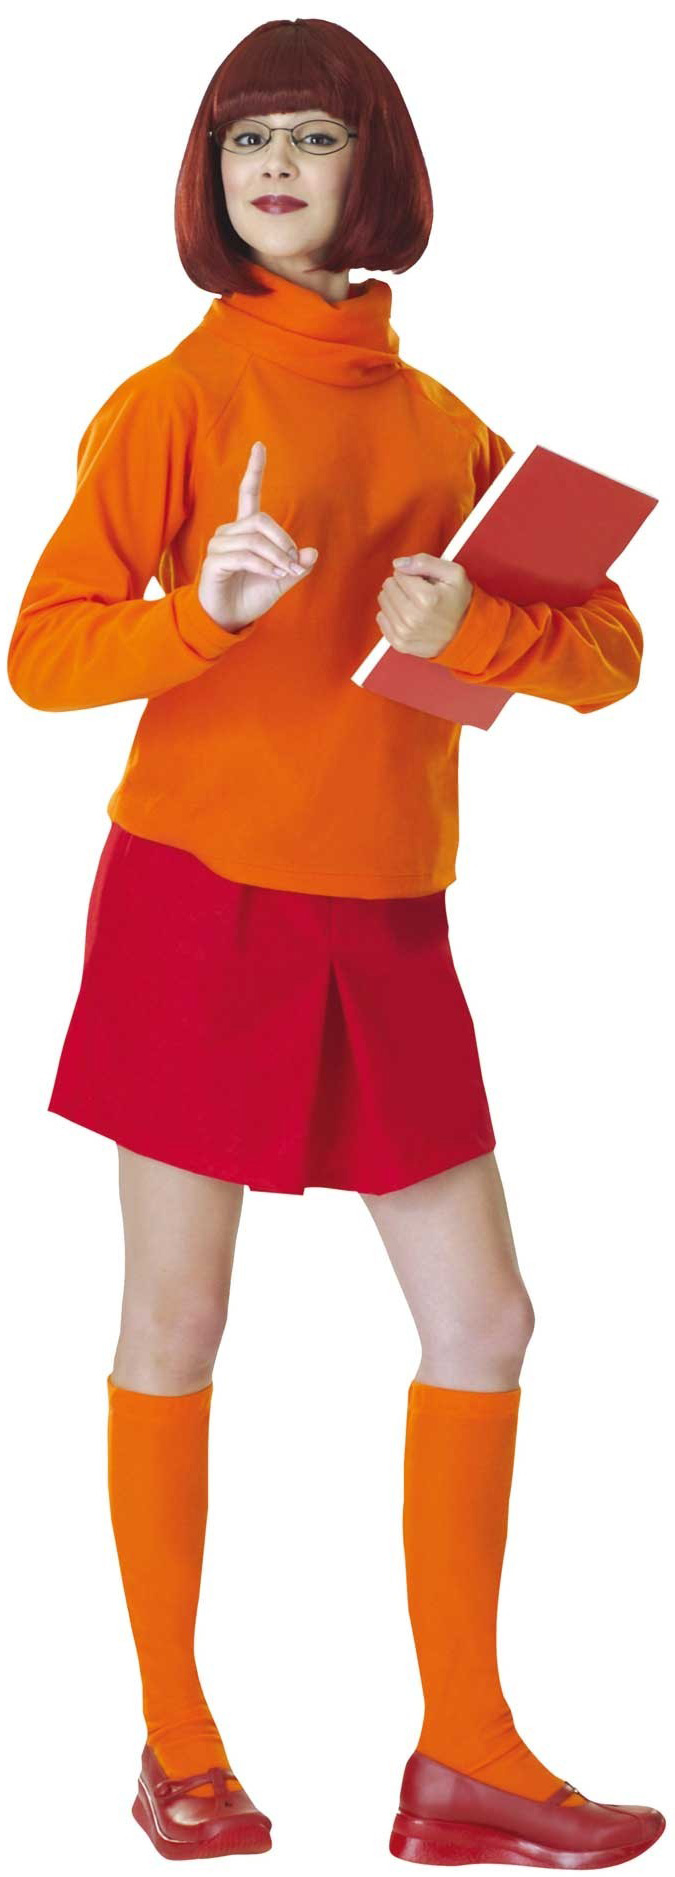 D guisement v ra scooby doo costume velma bande scoubidou - Personnages de scooby doo ...